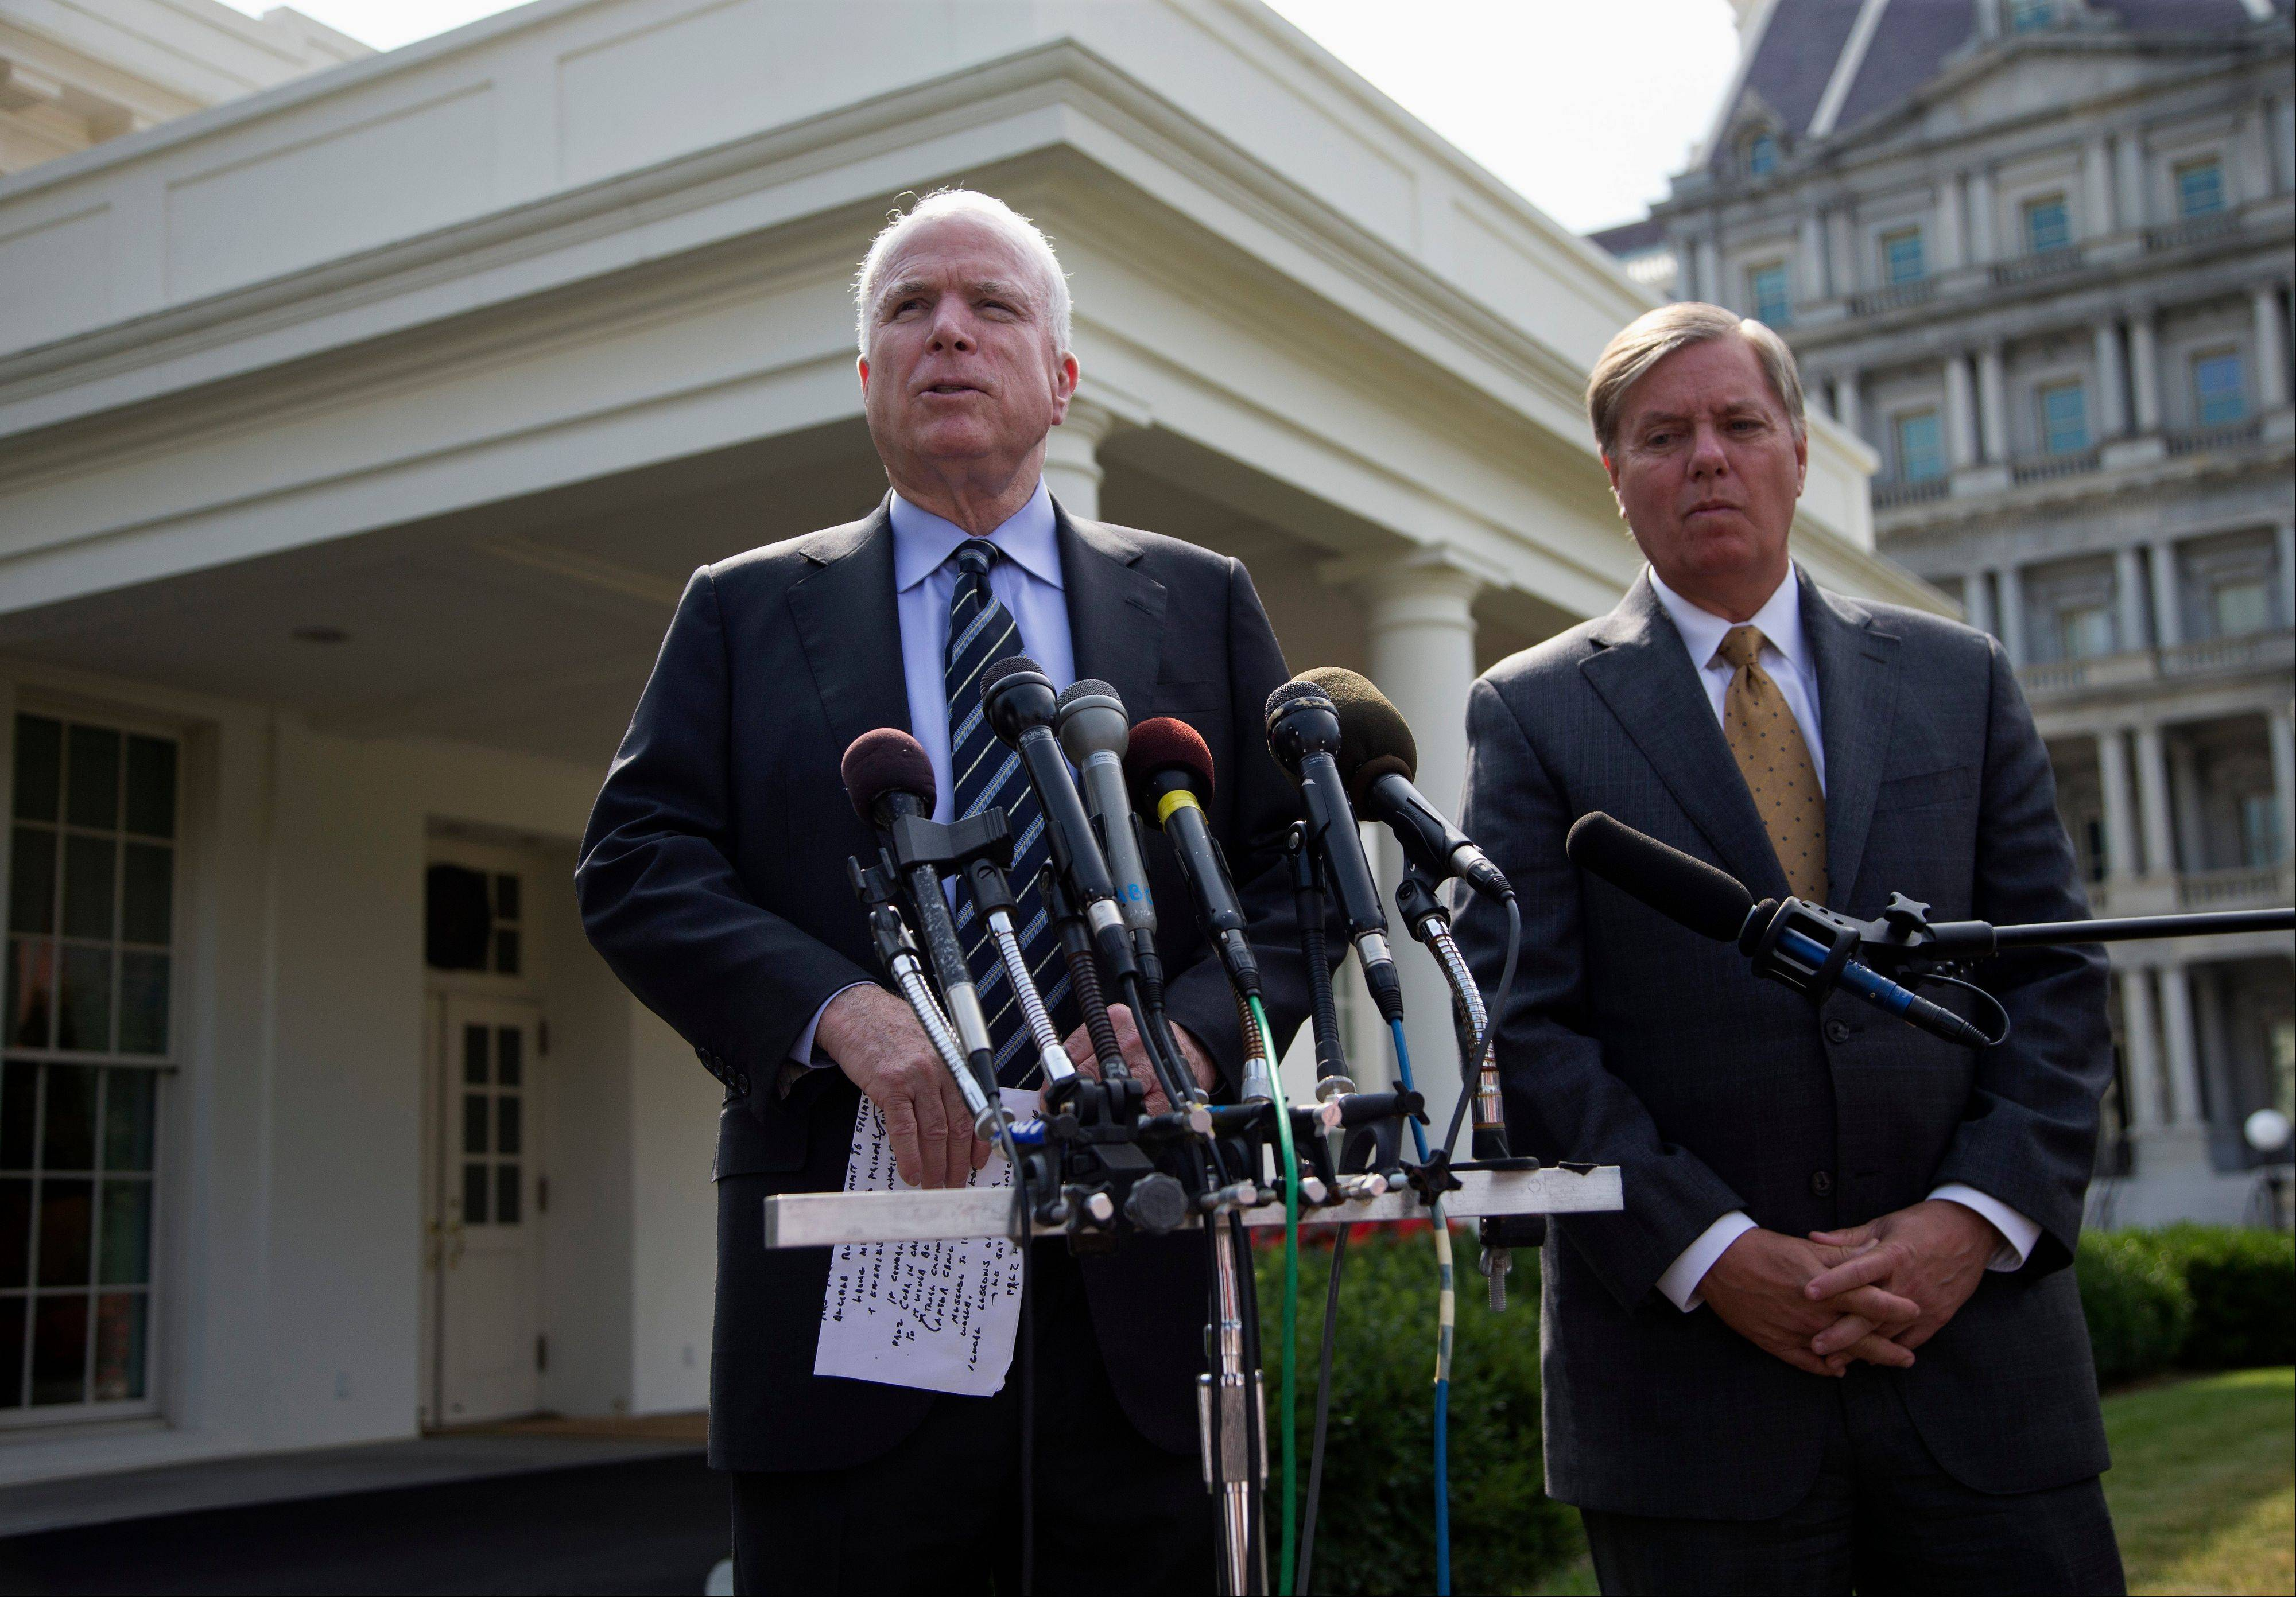 Sen. John McCain, left, accompanied by Sen. Lindsey Graham, speaks with reporters outside the White House in Washington, Monday, Sept. 2, 2013, following a closed-door meeting with President Barack Obama to discuss the situation with Syria.